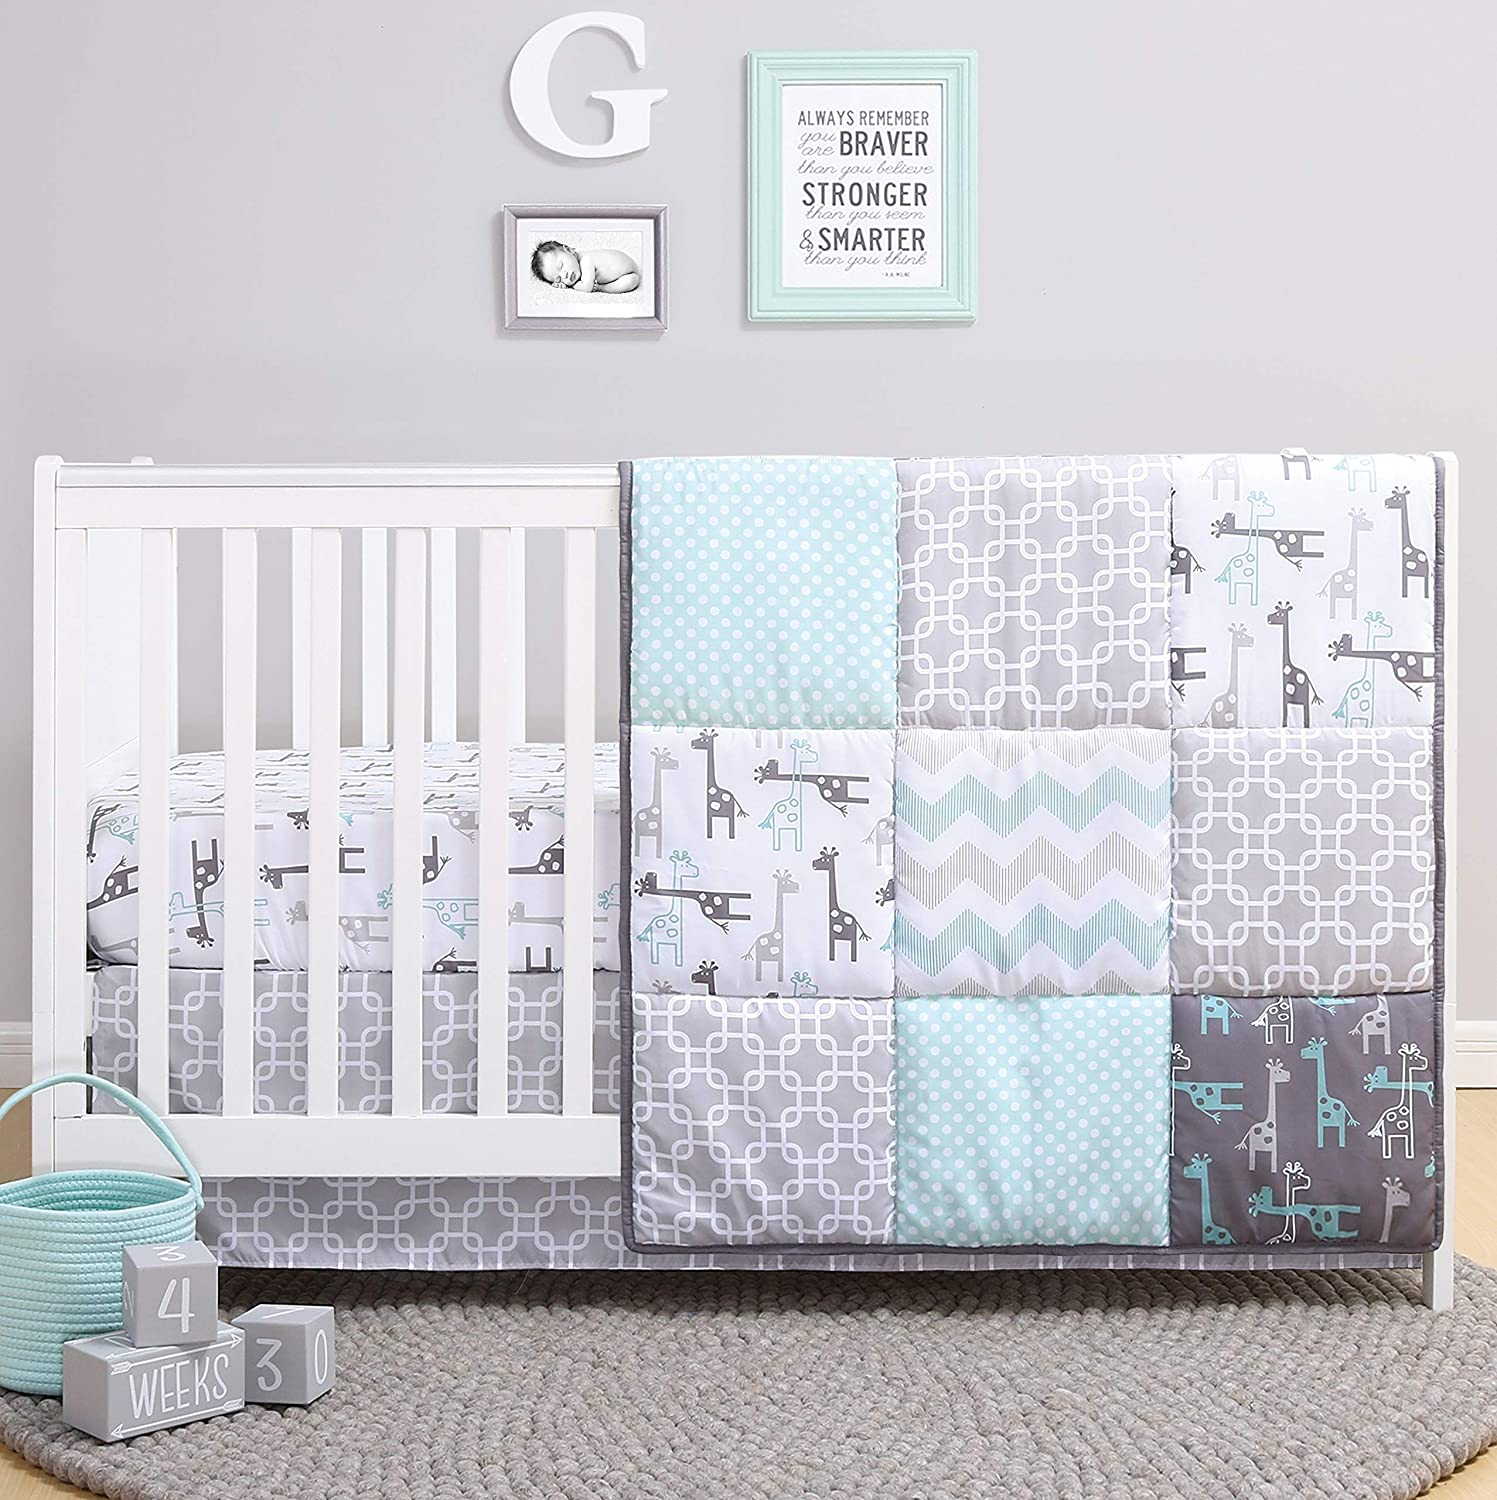 Amazon Com The Peanutshell Giraffe Crib Bedding Set For A Boy Girl And Unisex Nursery Baby Quilt Fitted Crib Sheet Crib Skirt Included Home Kitchen